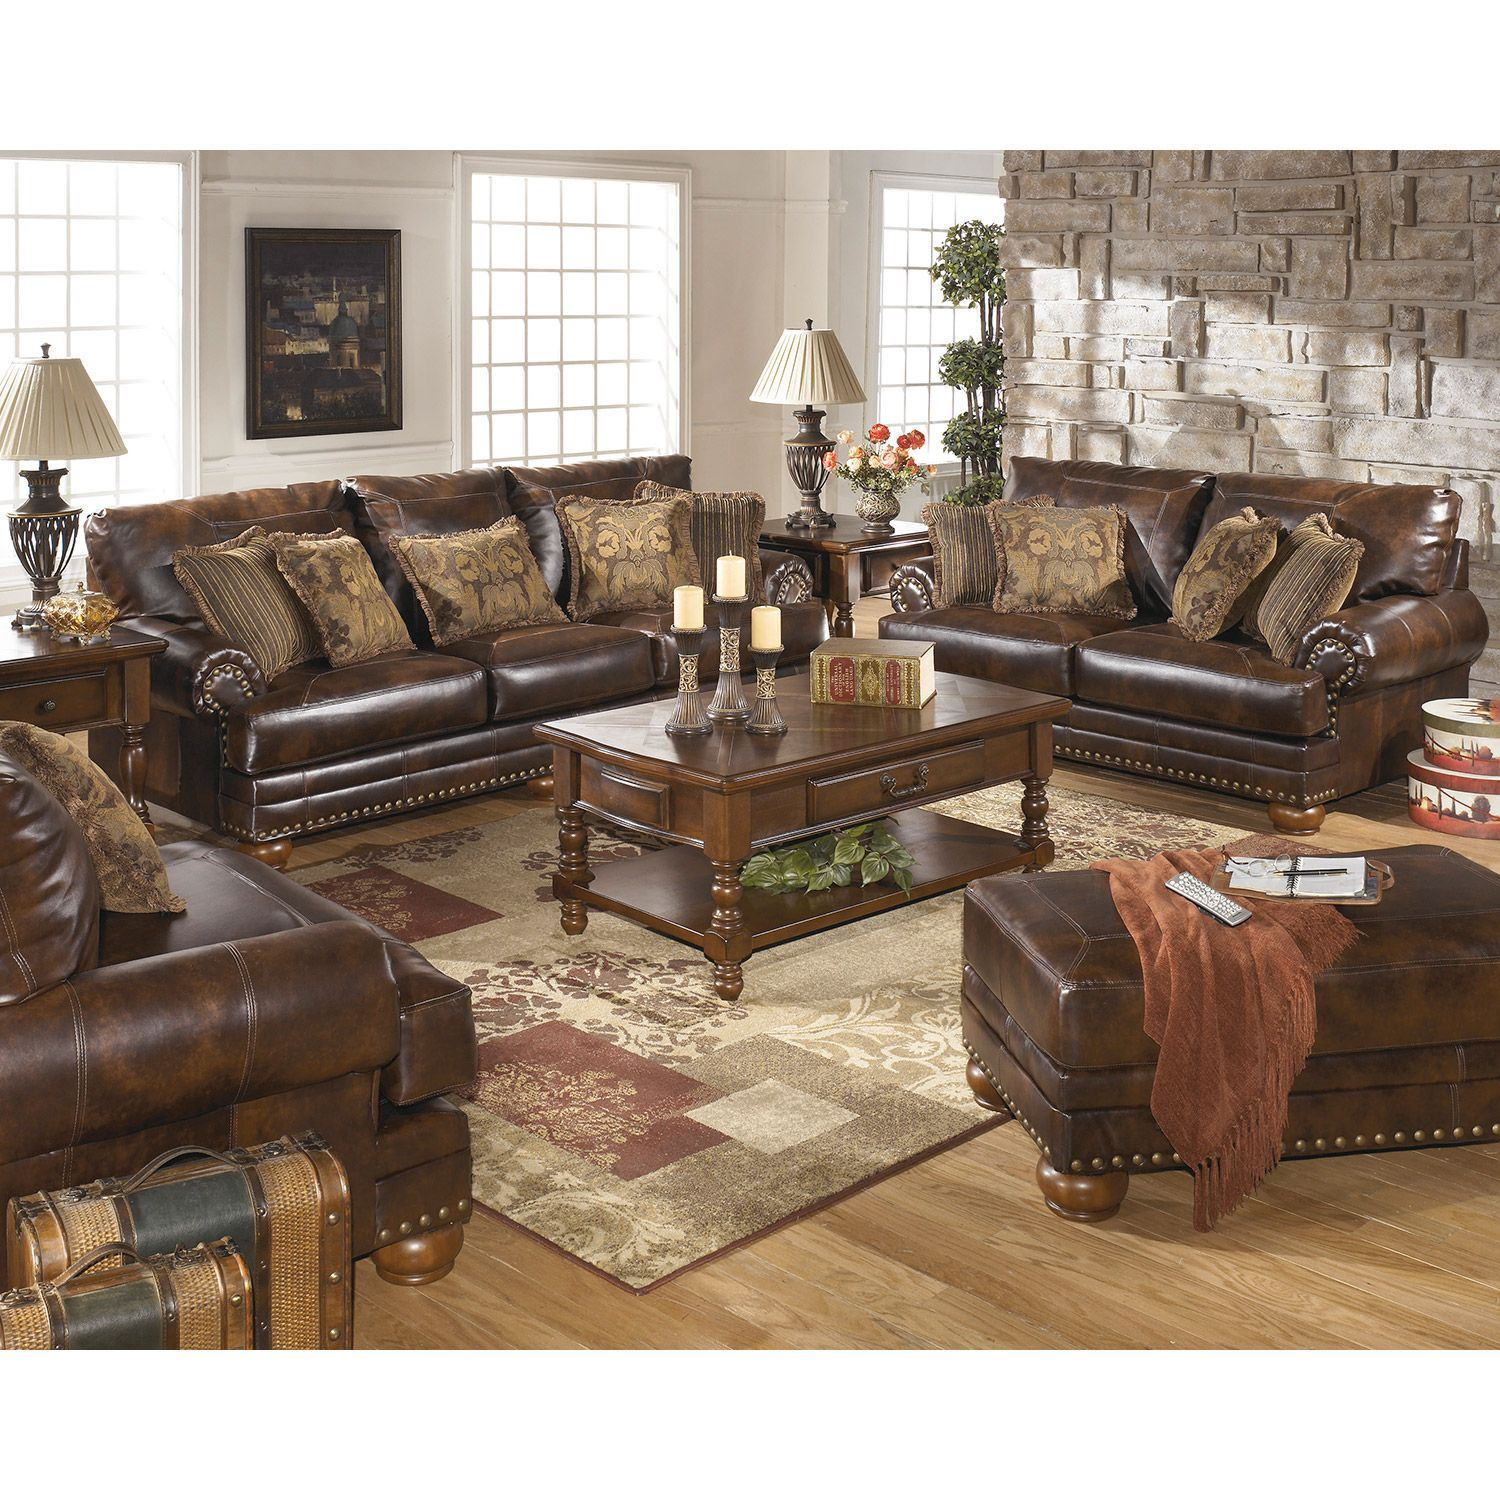 Antique bonded leather loveseat 9920035 ashley furniture afw Ashley home furniture weekly ad